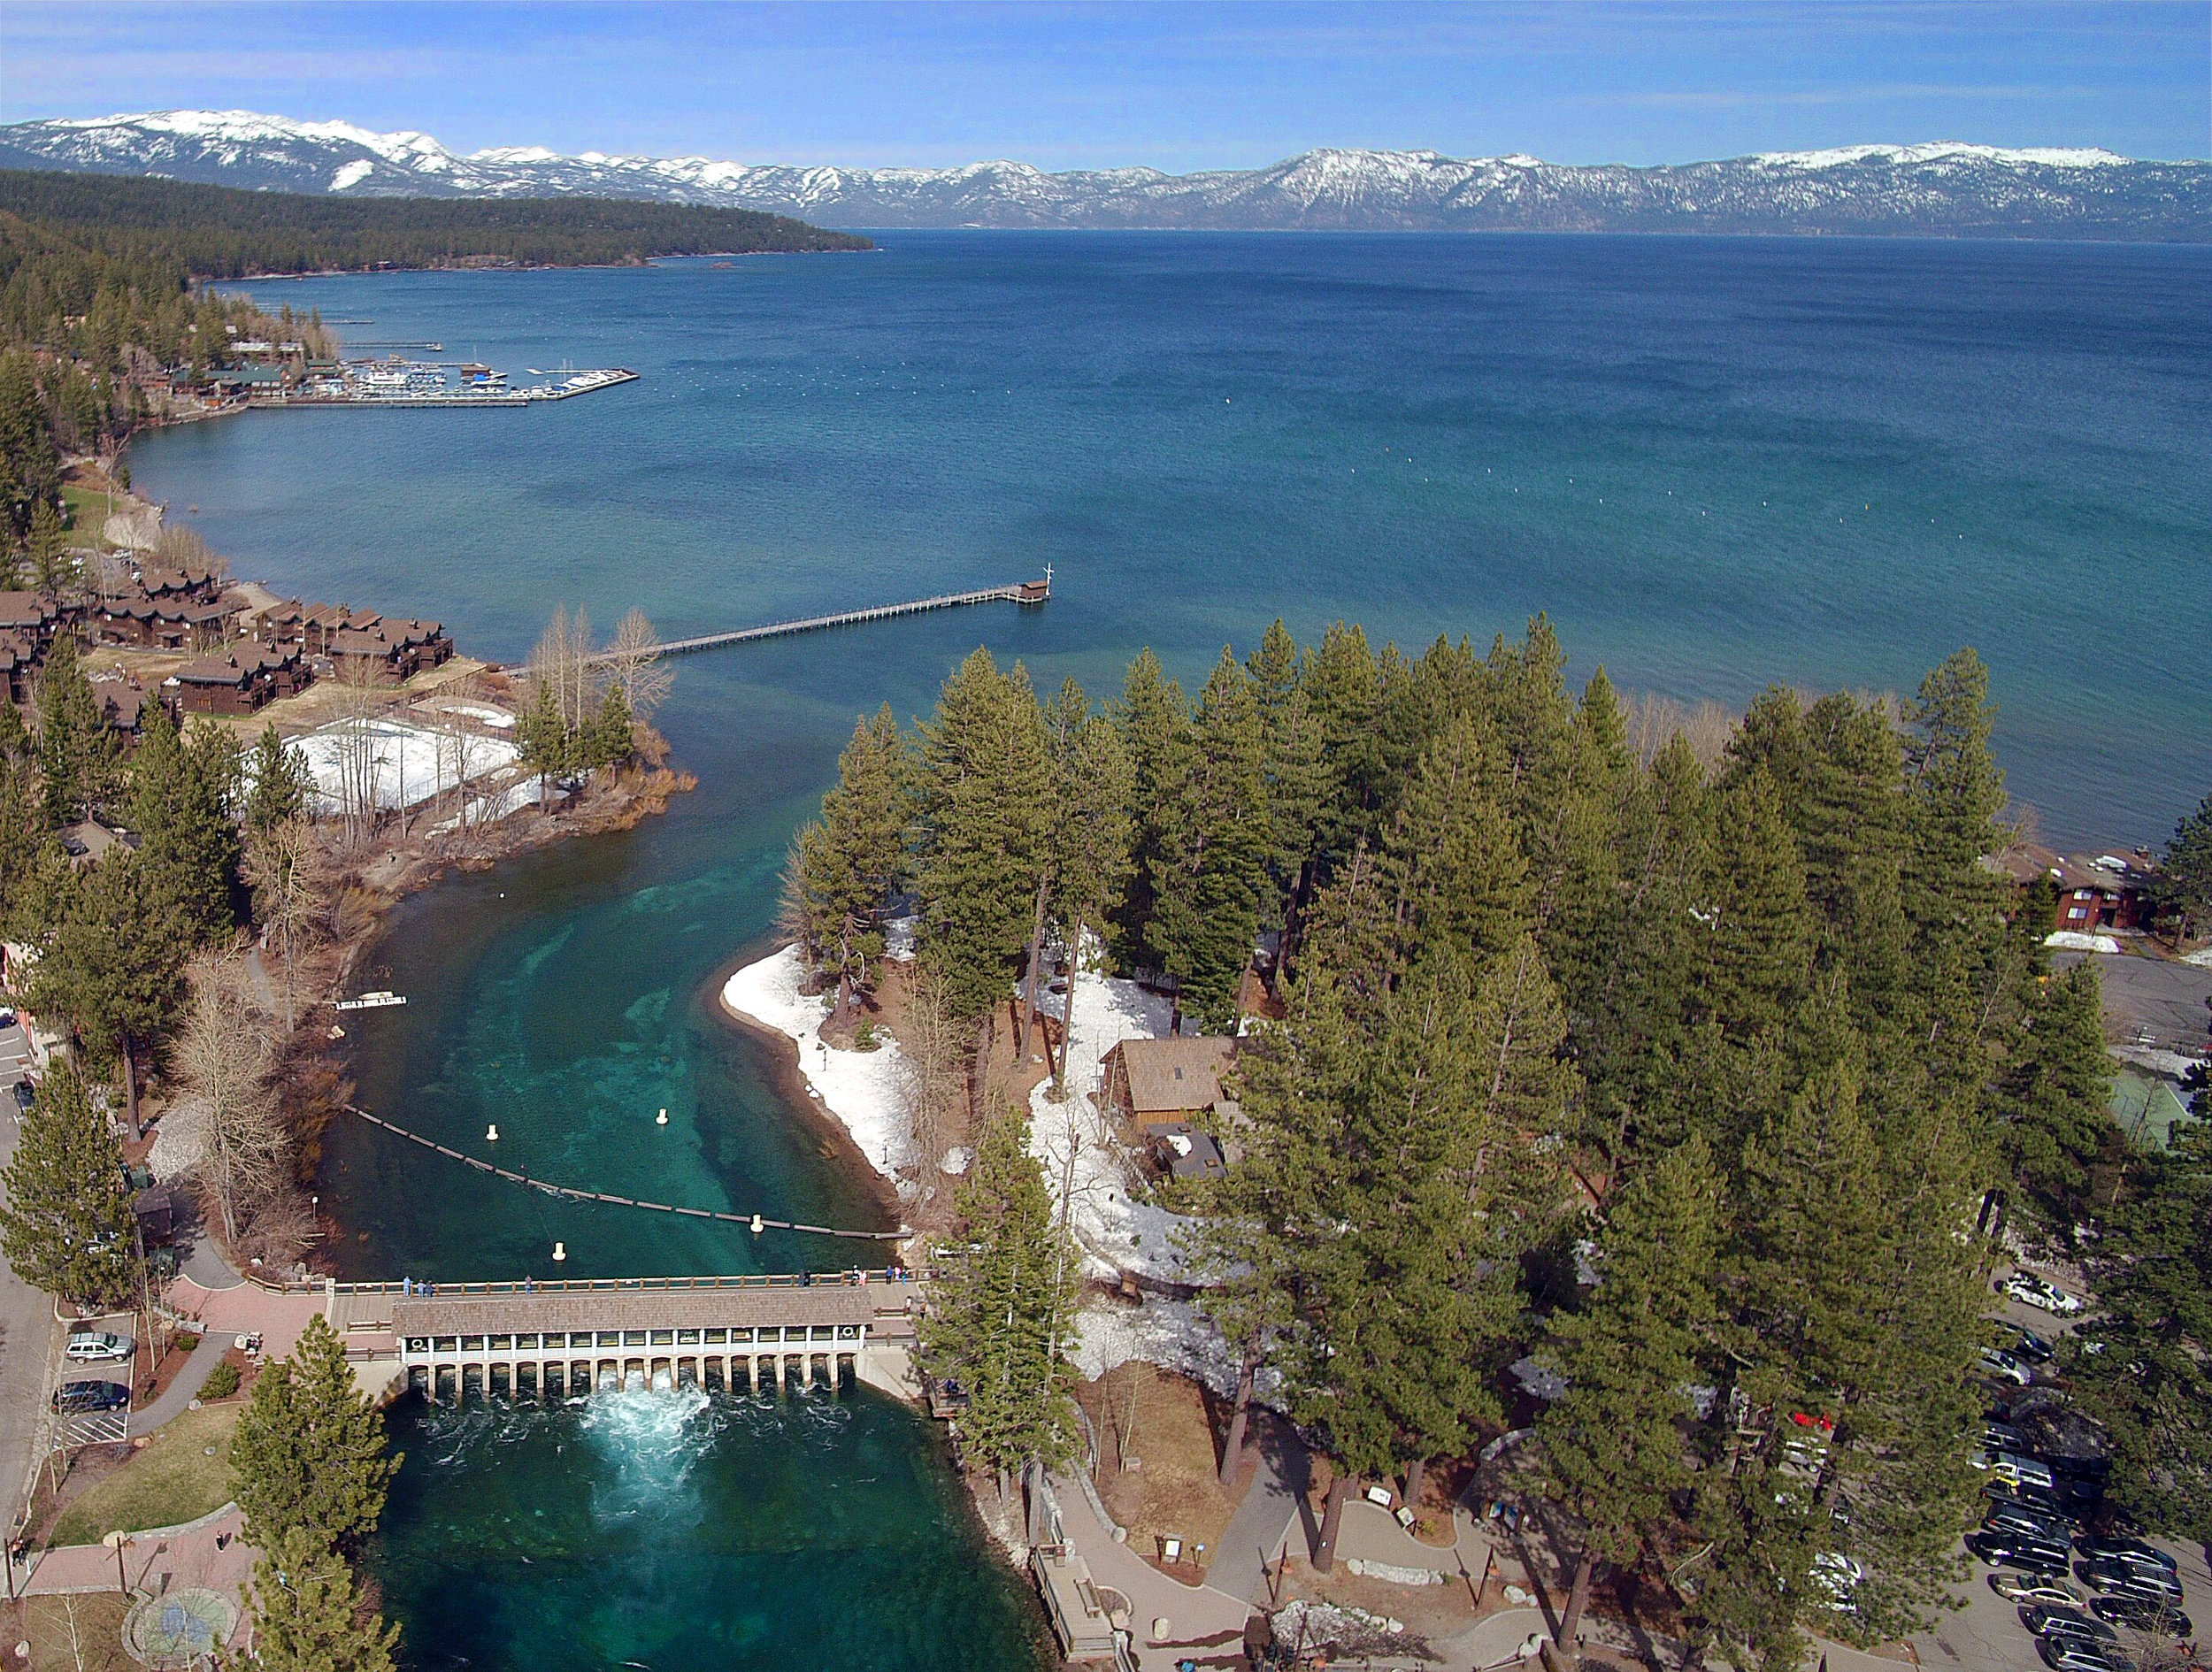 Drone Photography in Lake Tahoe